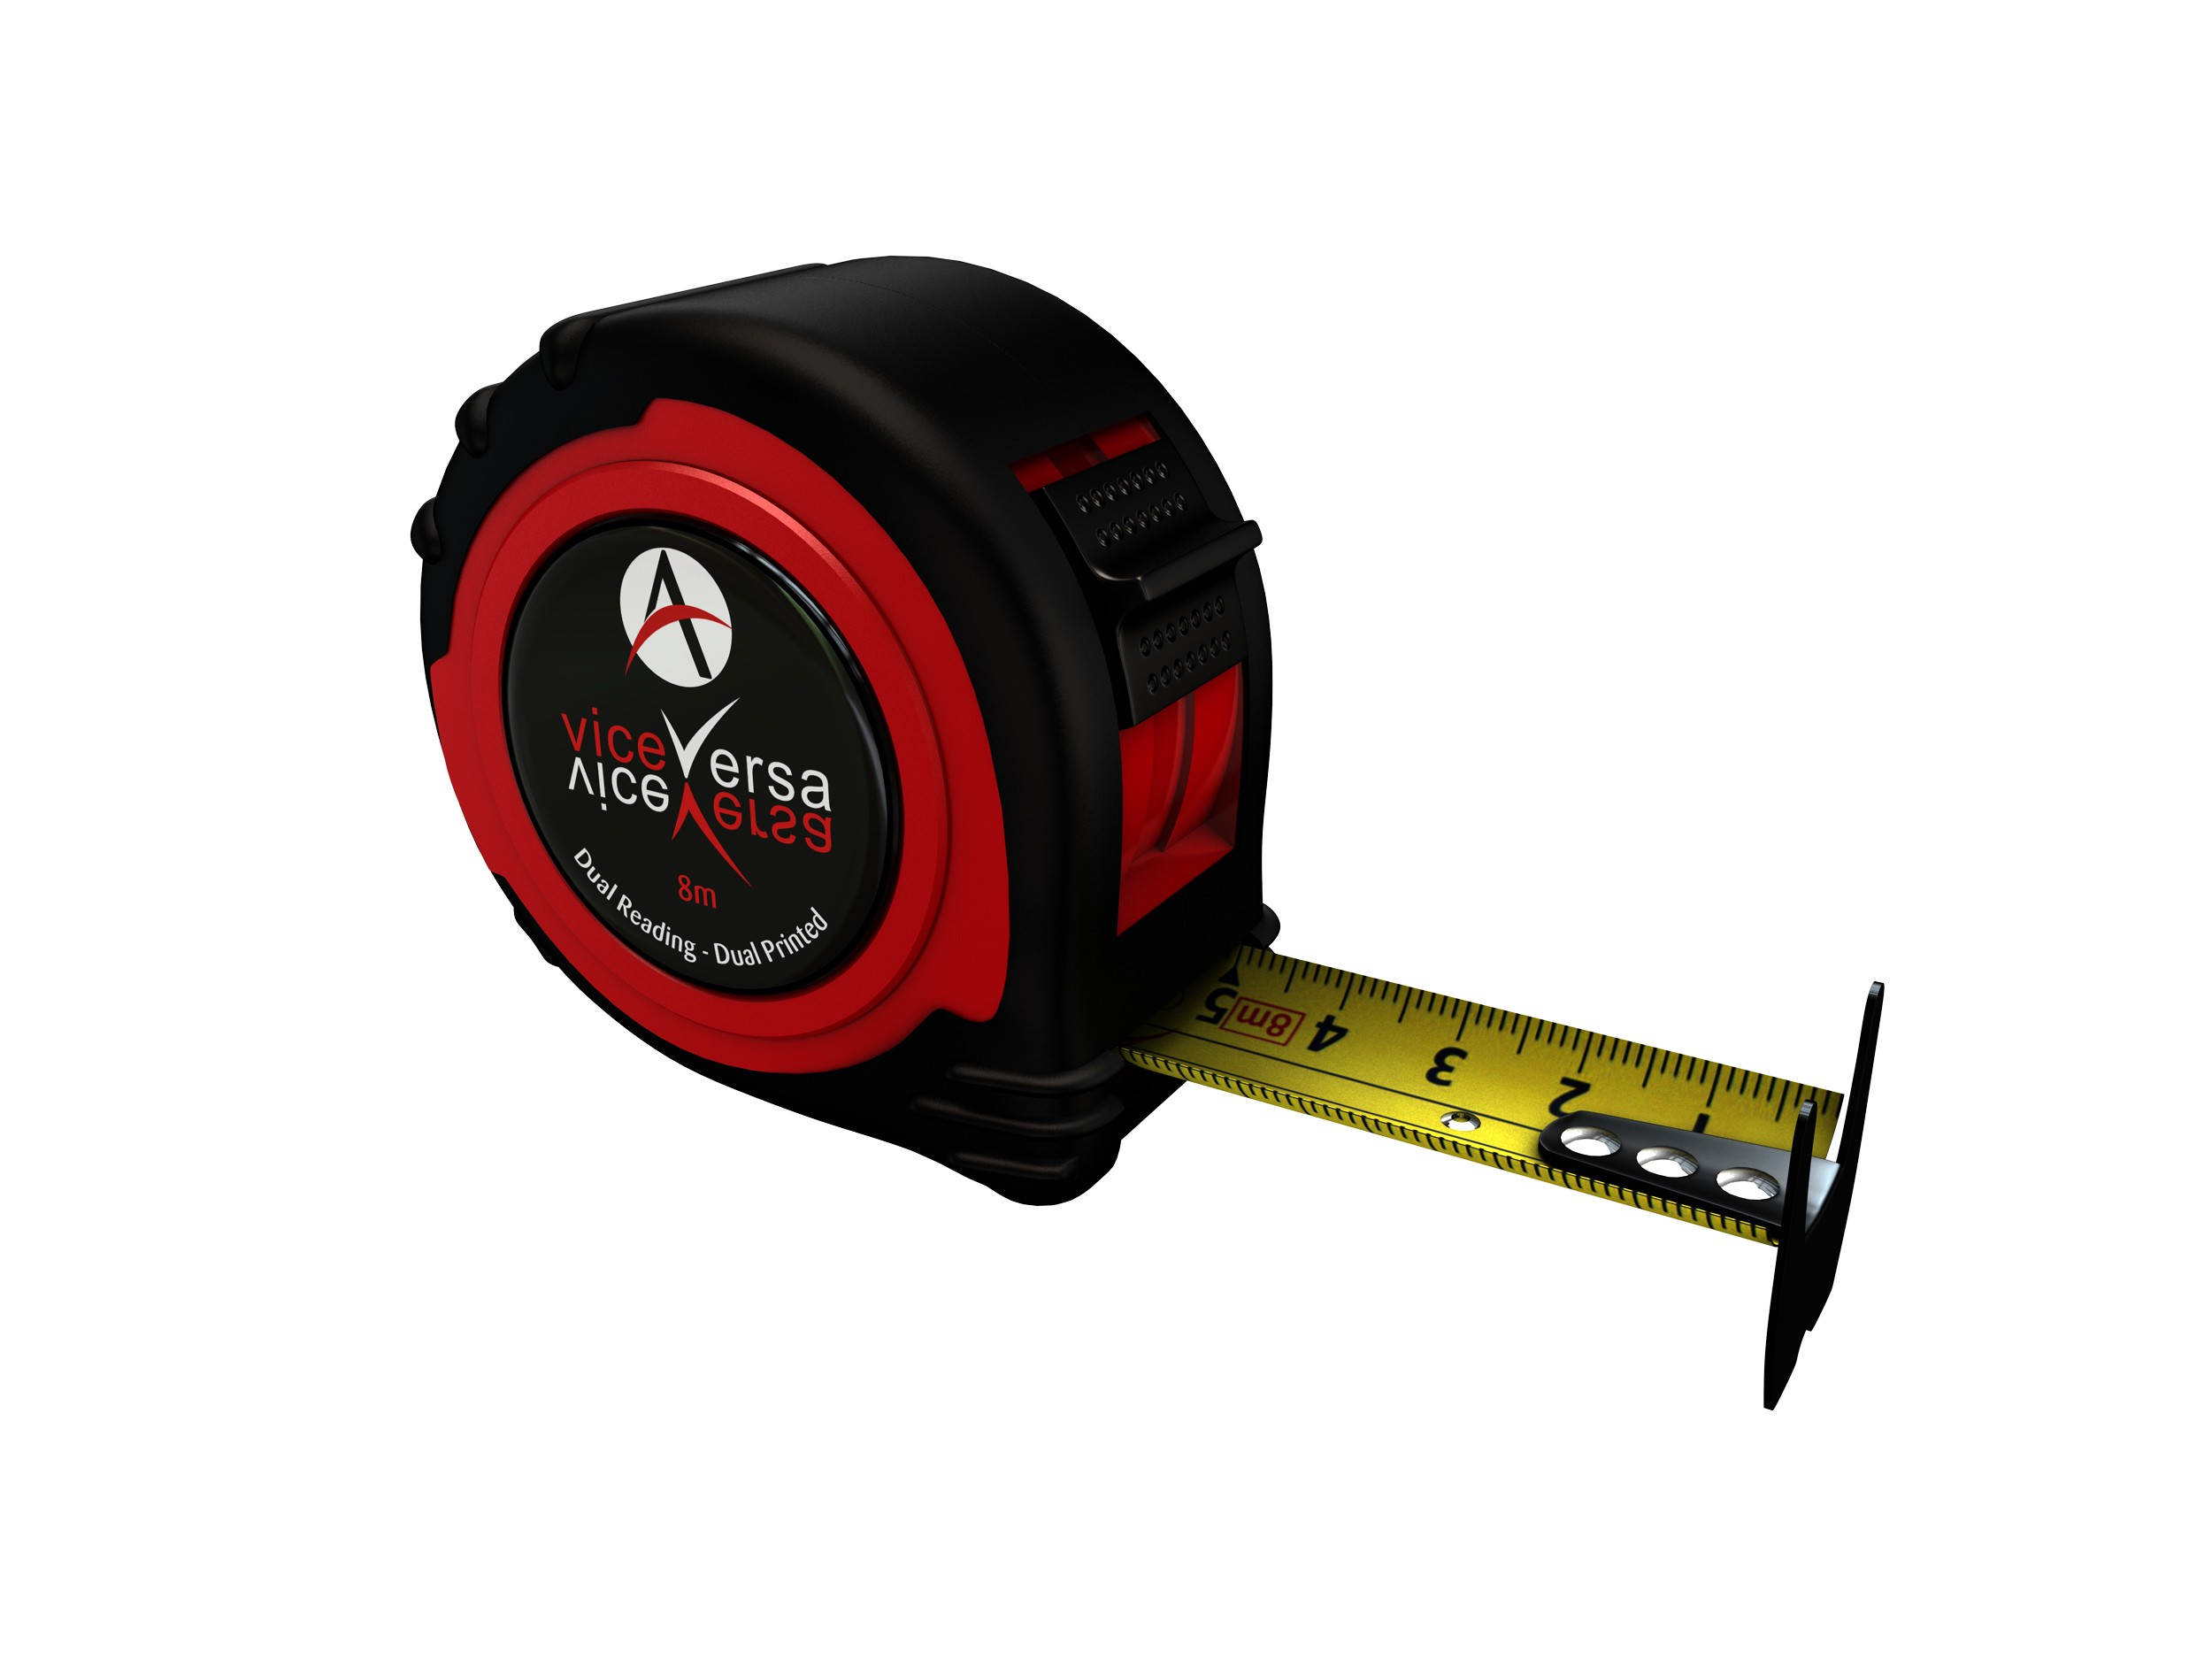 Vice Versa 8m Tape Measure